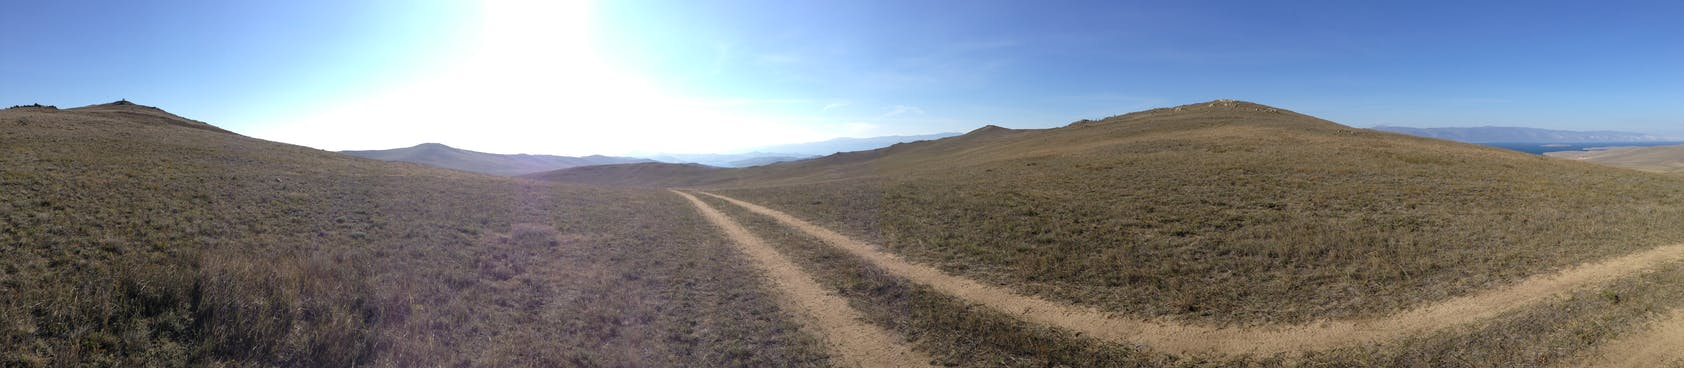 Hills as far as the eye can see.